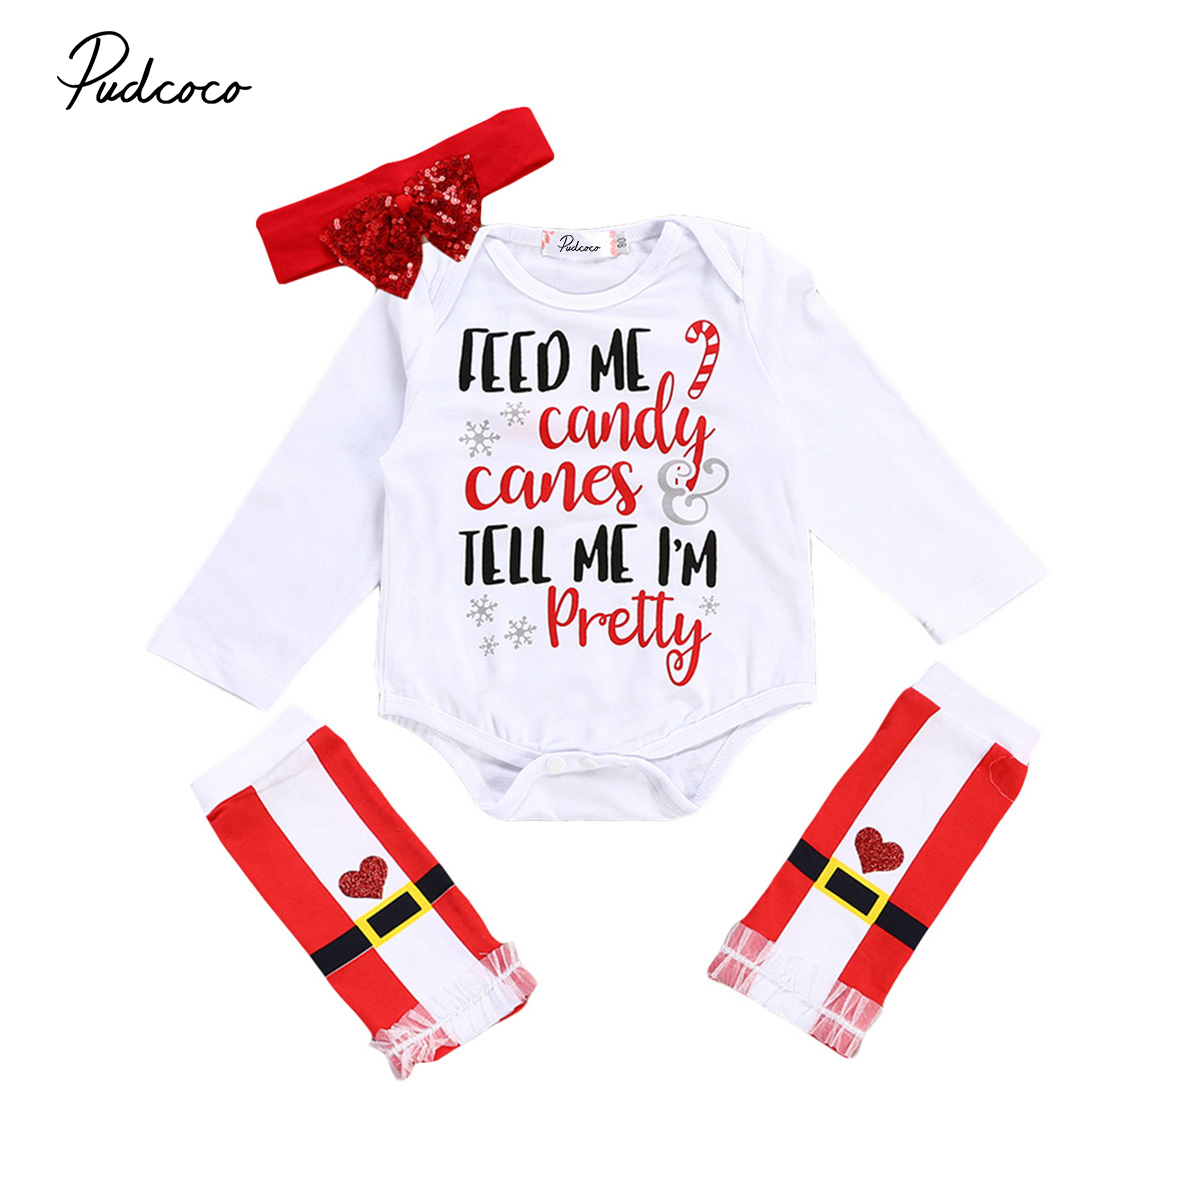 3pcs Christmas Baby Girl Romper Outfits Set Newborn Baby Girls Long Sleeve Rompers+Headband+Leg Warmers Xmas Outfit Clothes Set pink newborn infant baby girls clothes short sleeve bodysuit striped leg warmers headband 3pcs outfit bebek clothing set 0 18m